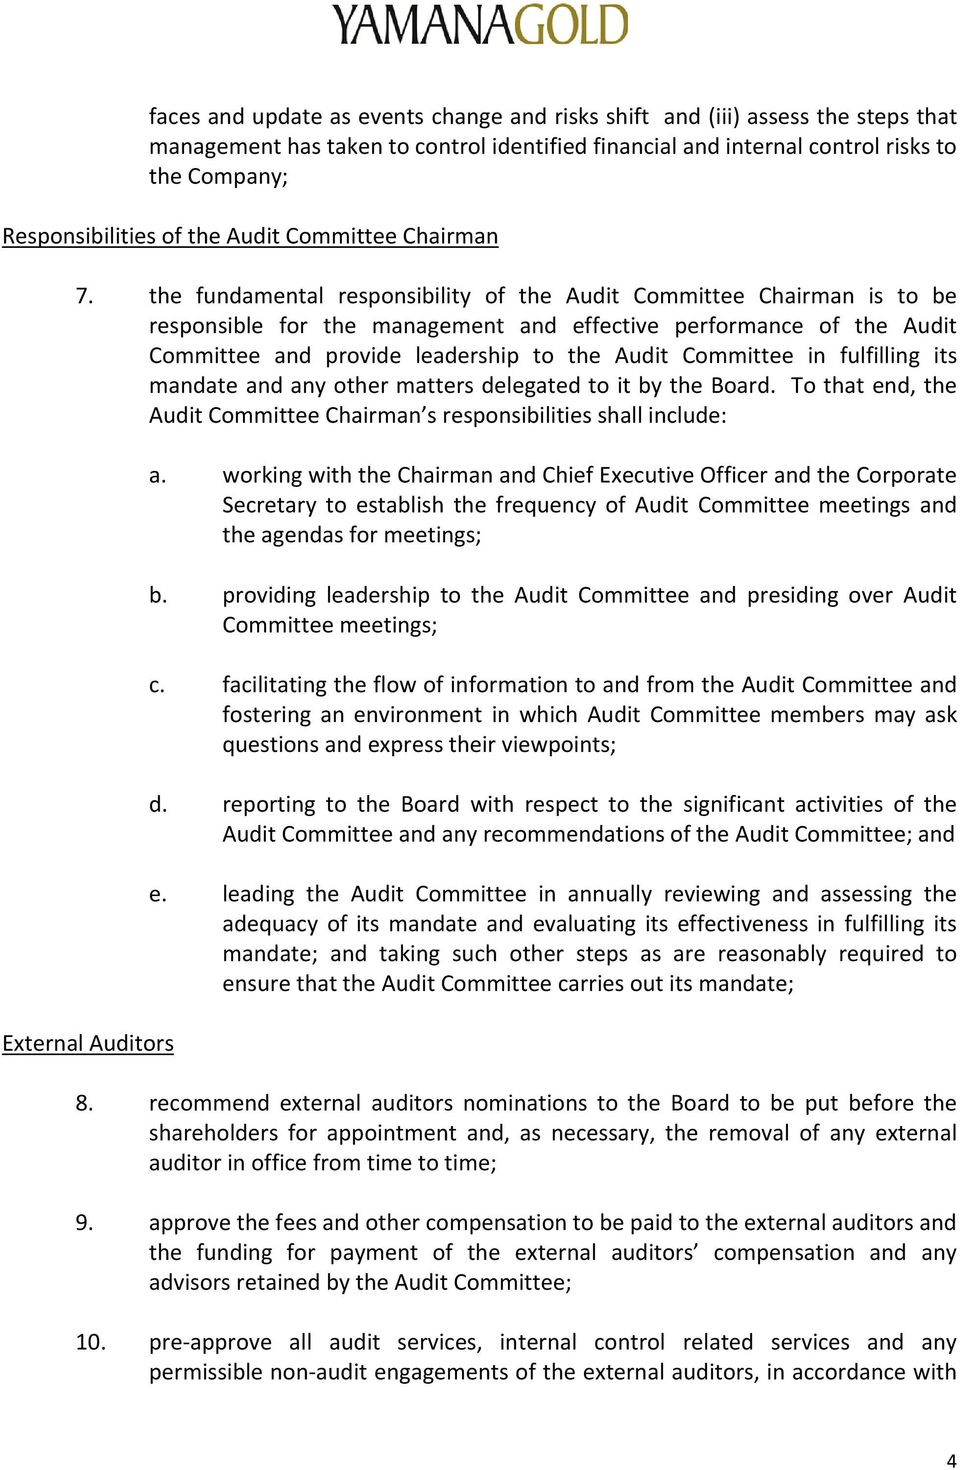 the fundamental responsibility of the Audit Committee Chairman is to be responsible for the management and effective performance of the Audit Committee and provide leadership to the Audit Committee